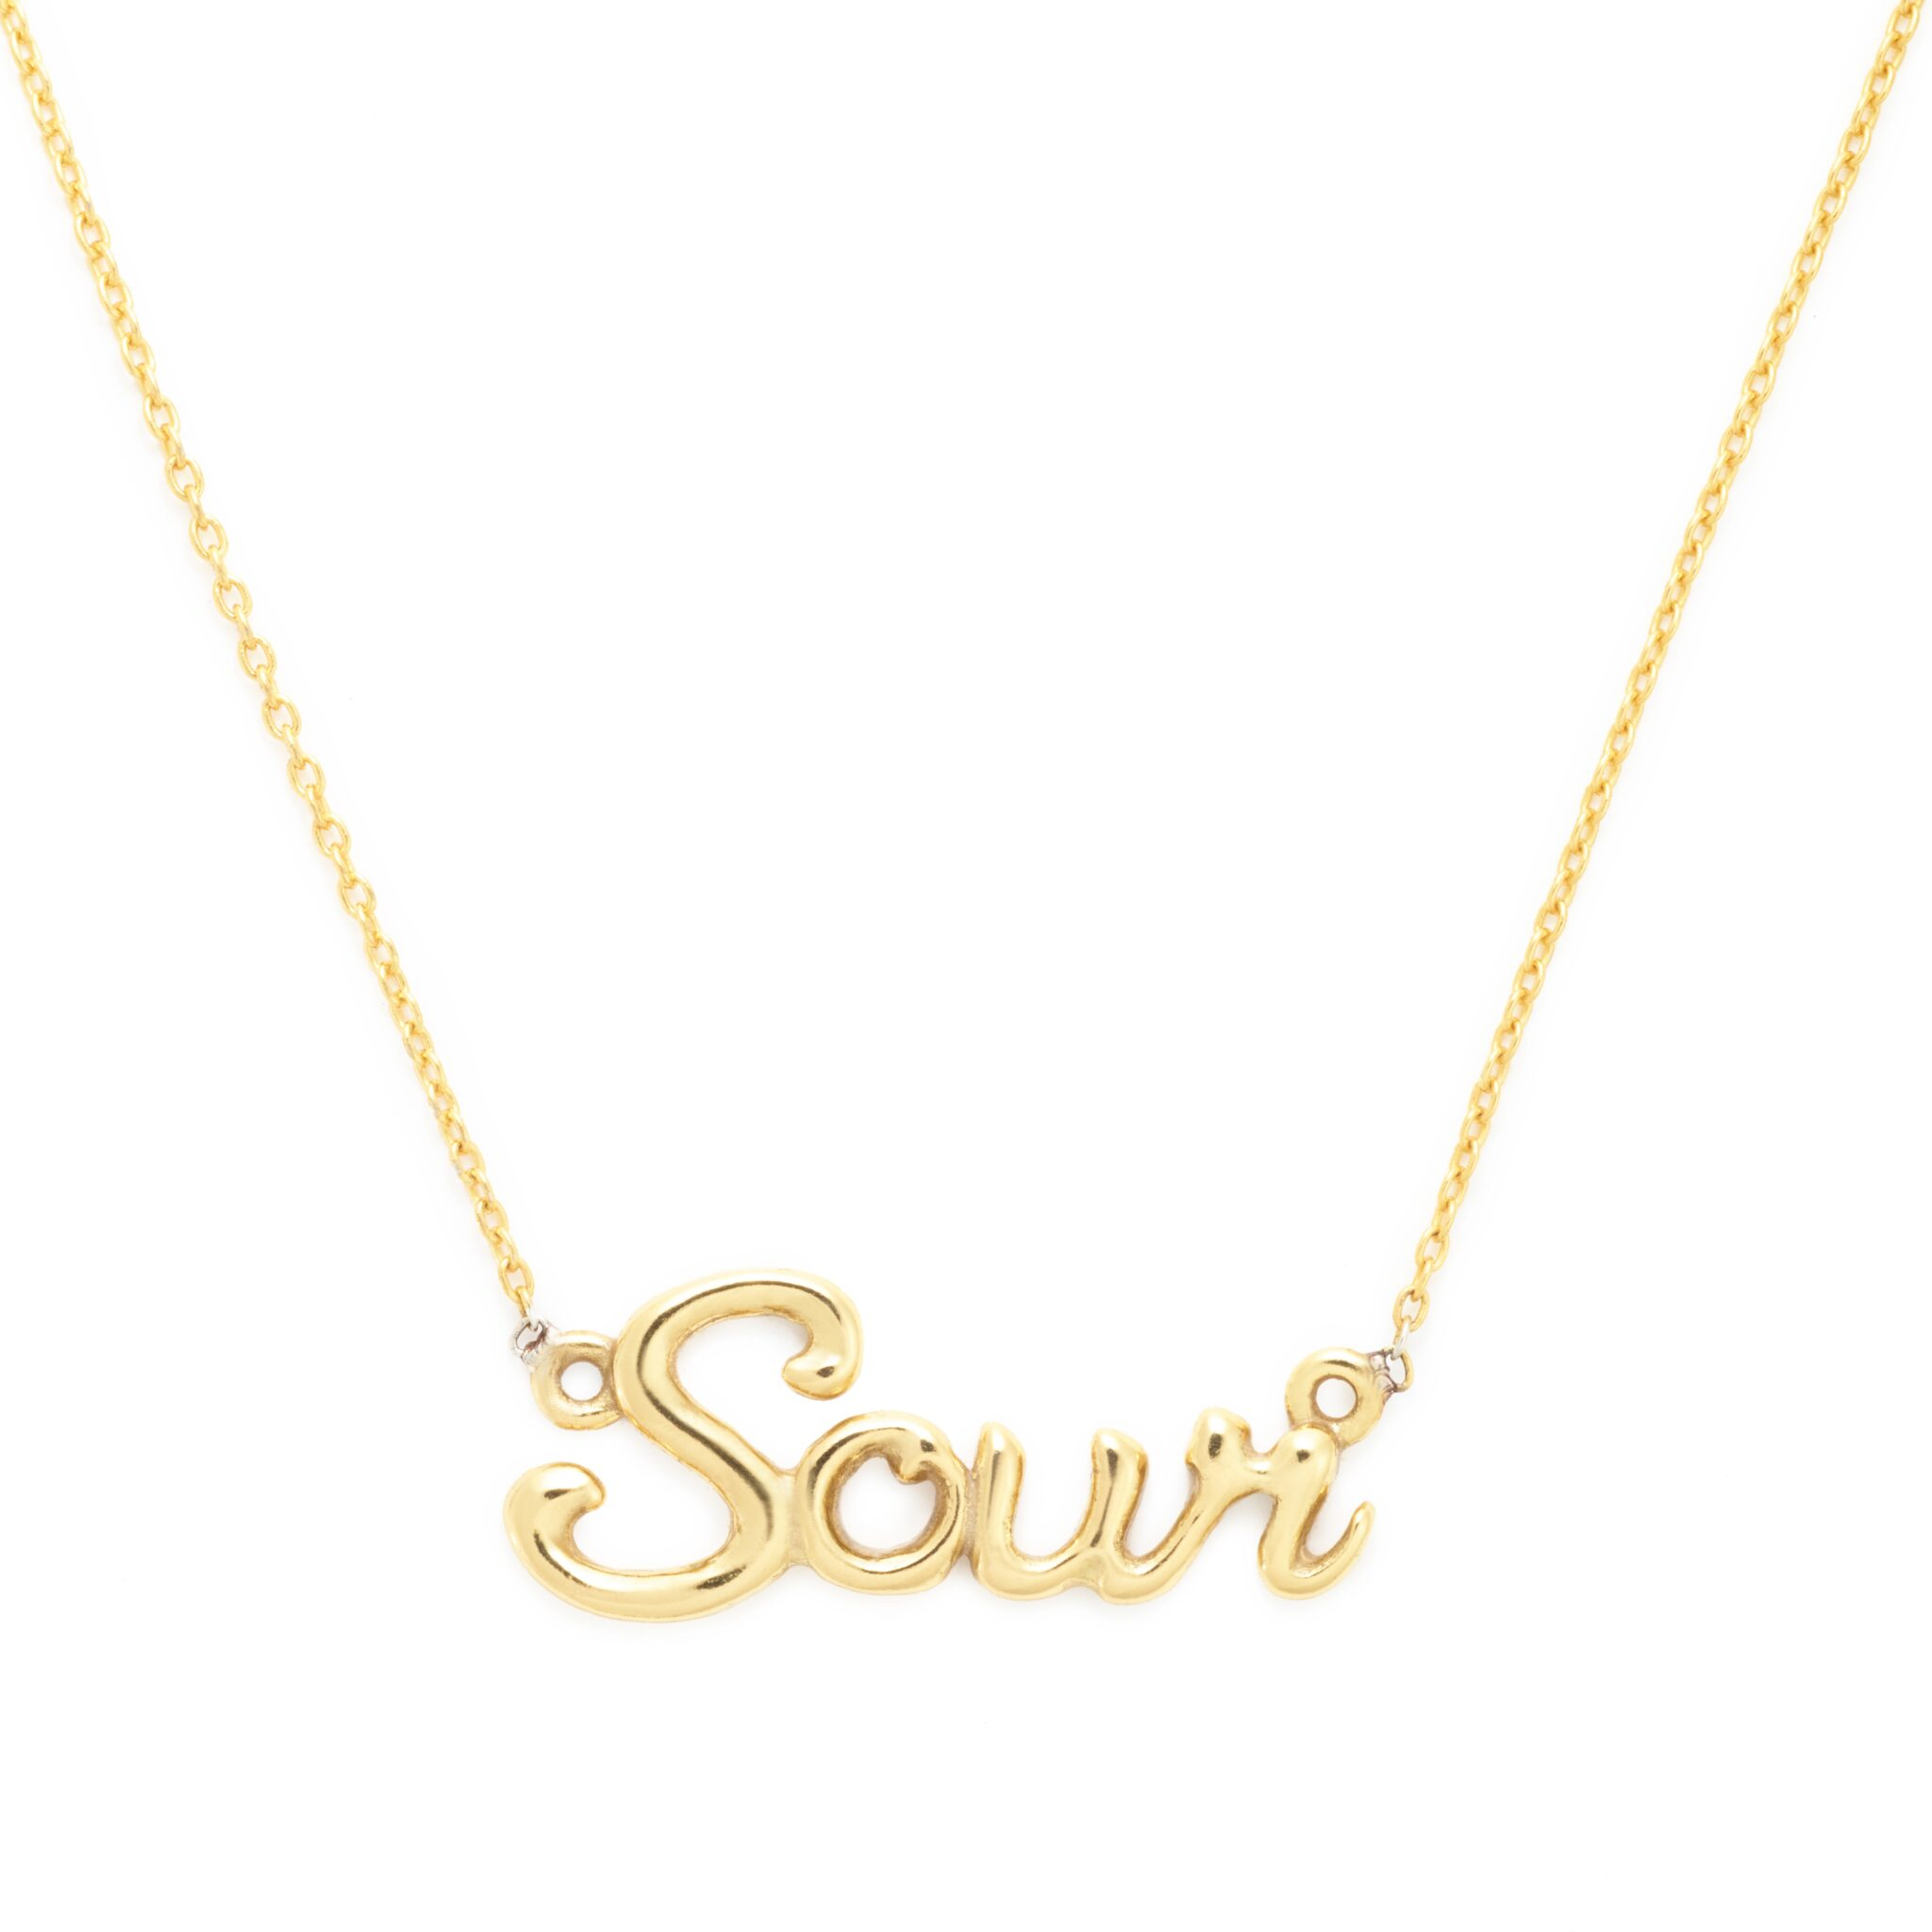 Sour Necklace, Yellow Gold Plated